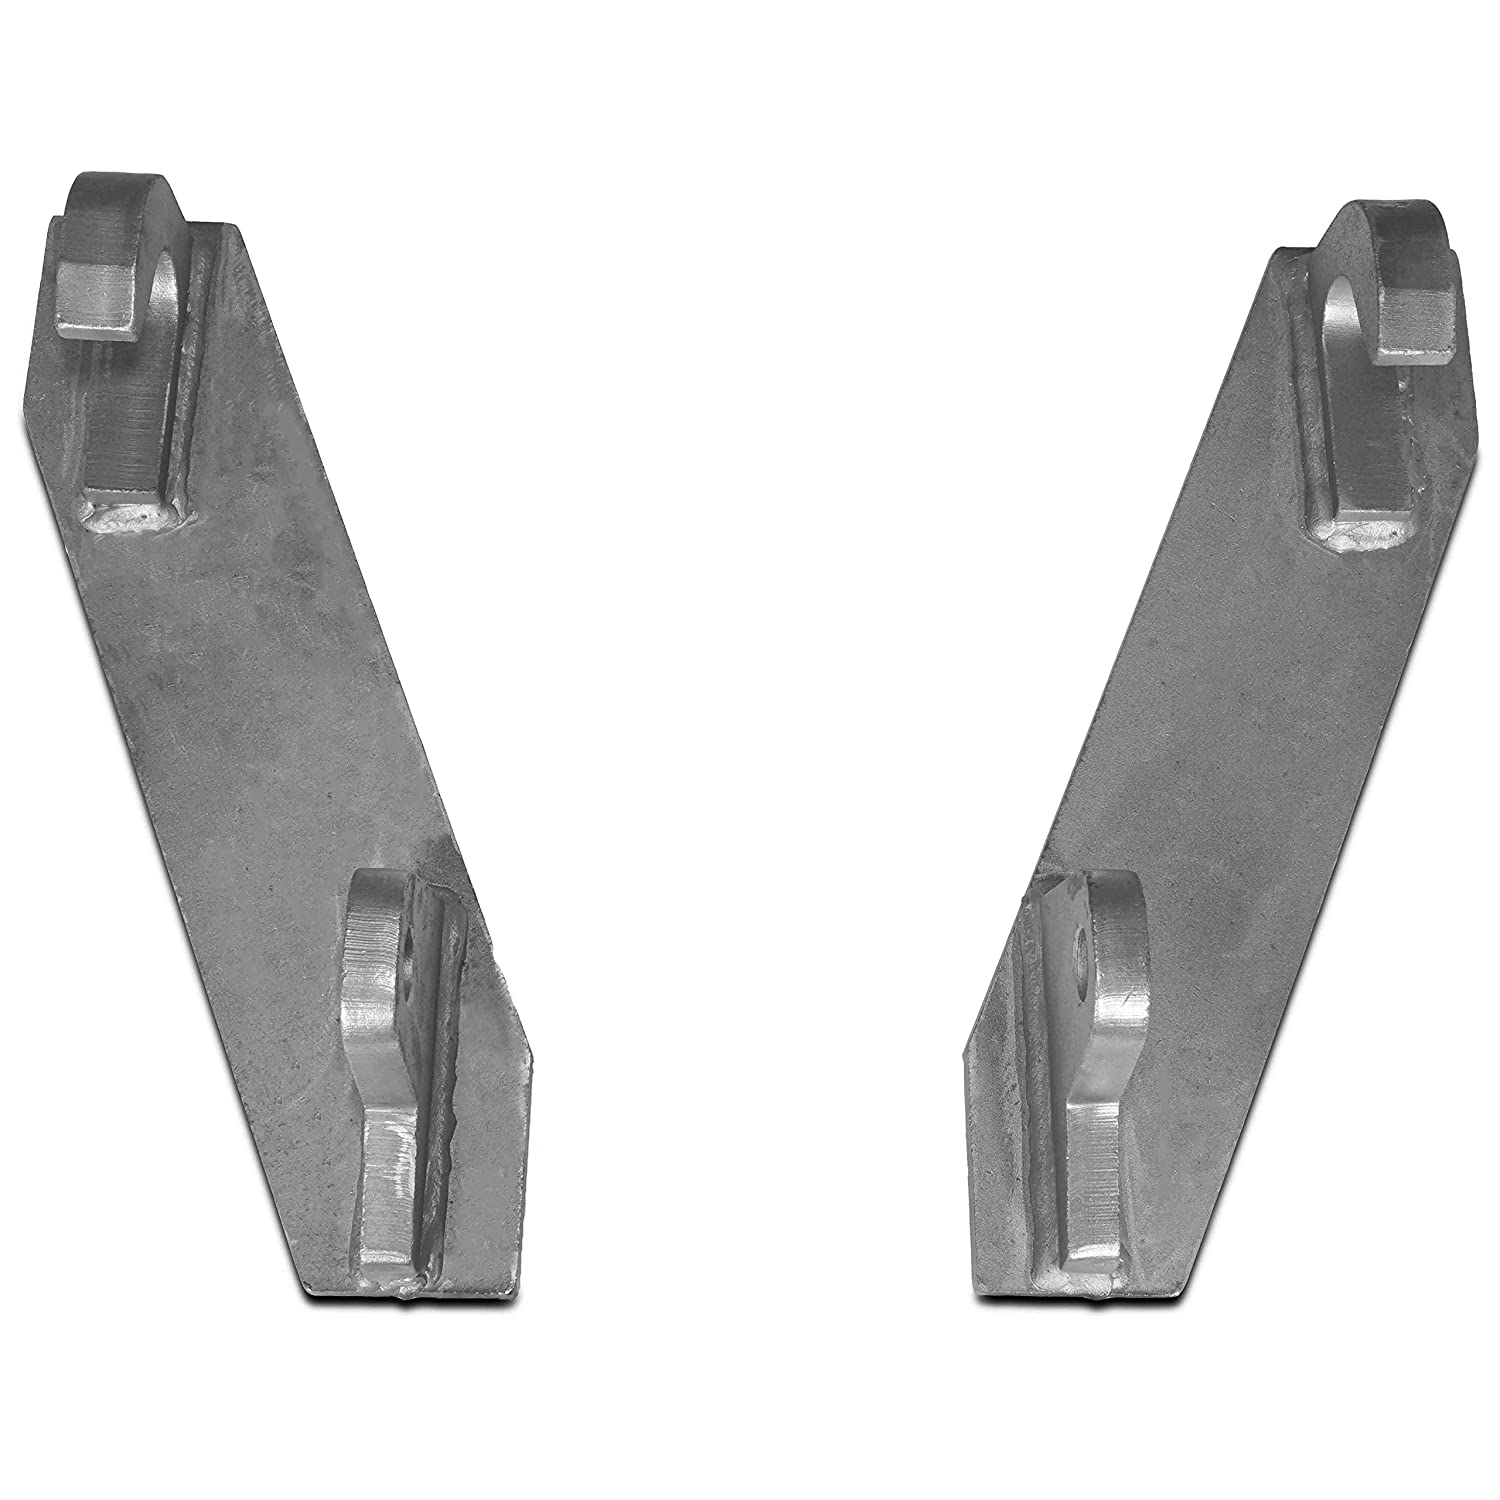 Titan Mounting Brackets made to fit John Deere Global Euro loaders Titan Attachments GMB